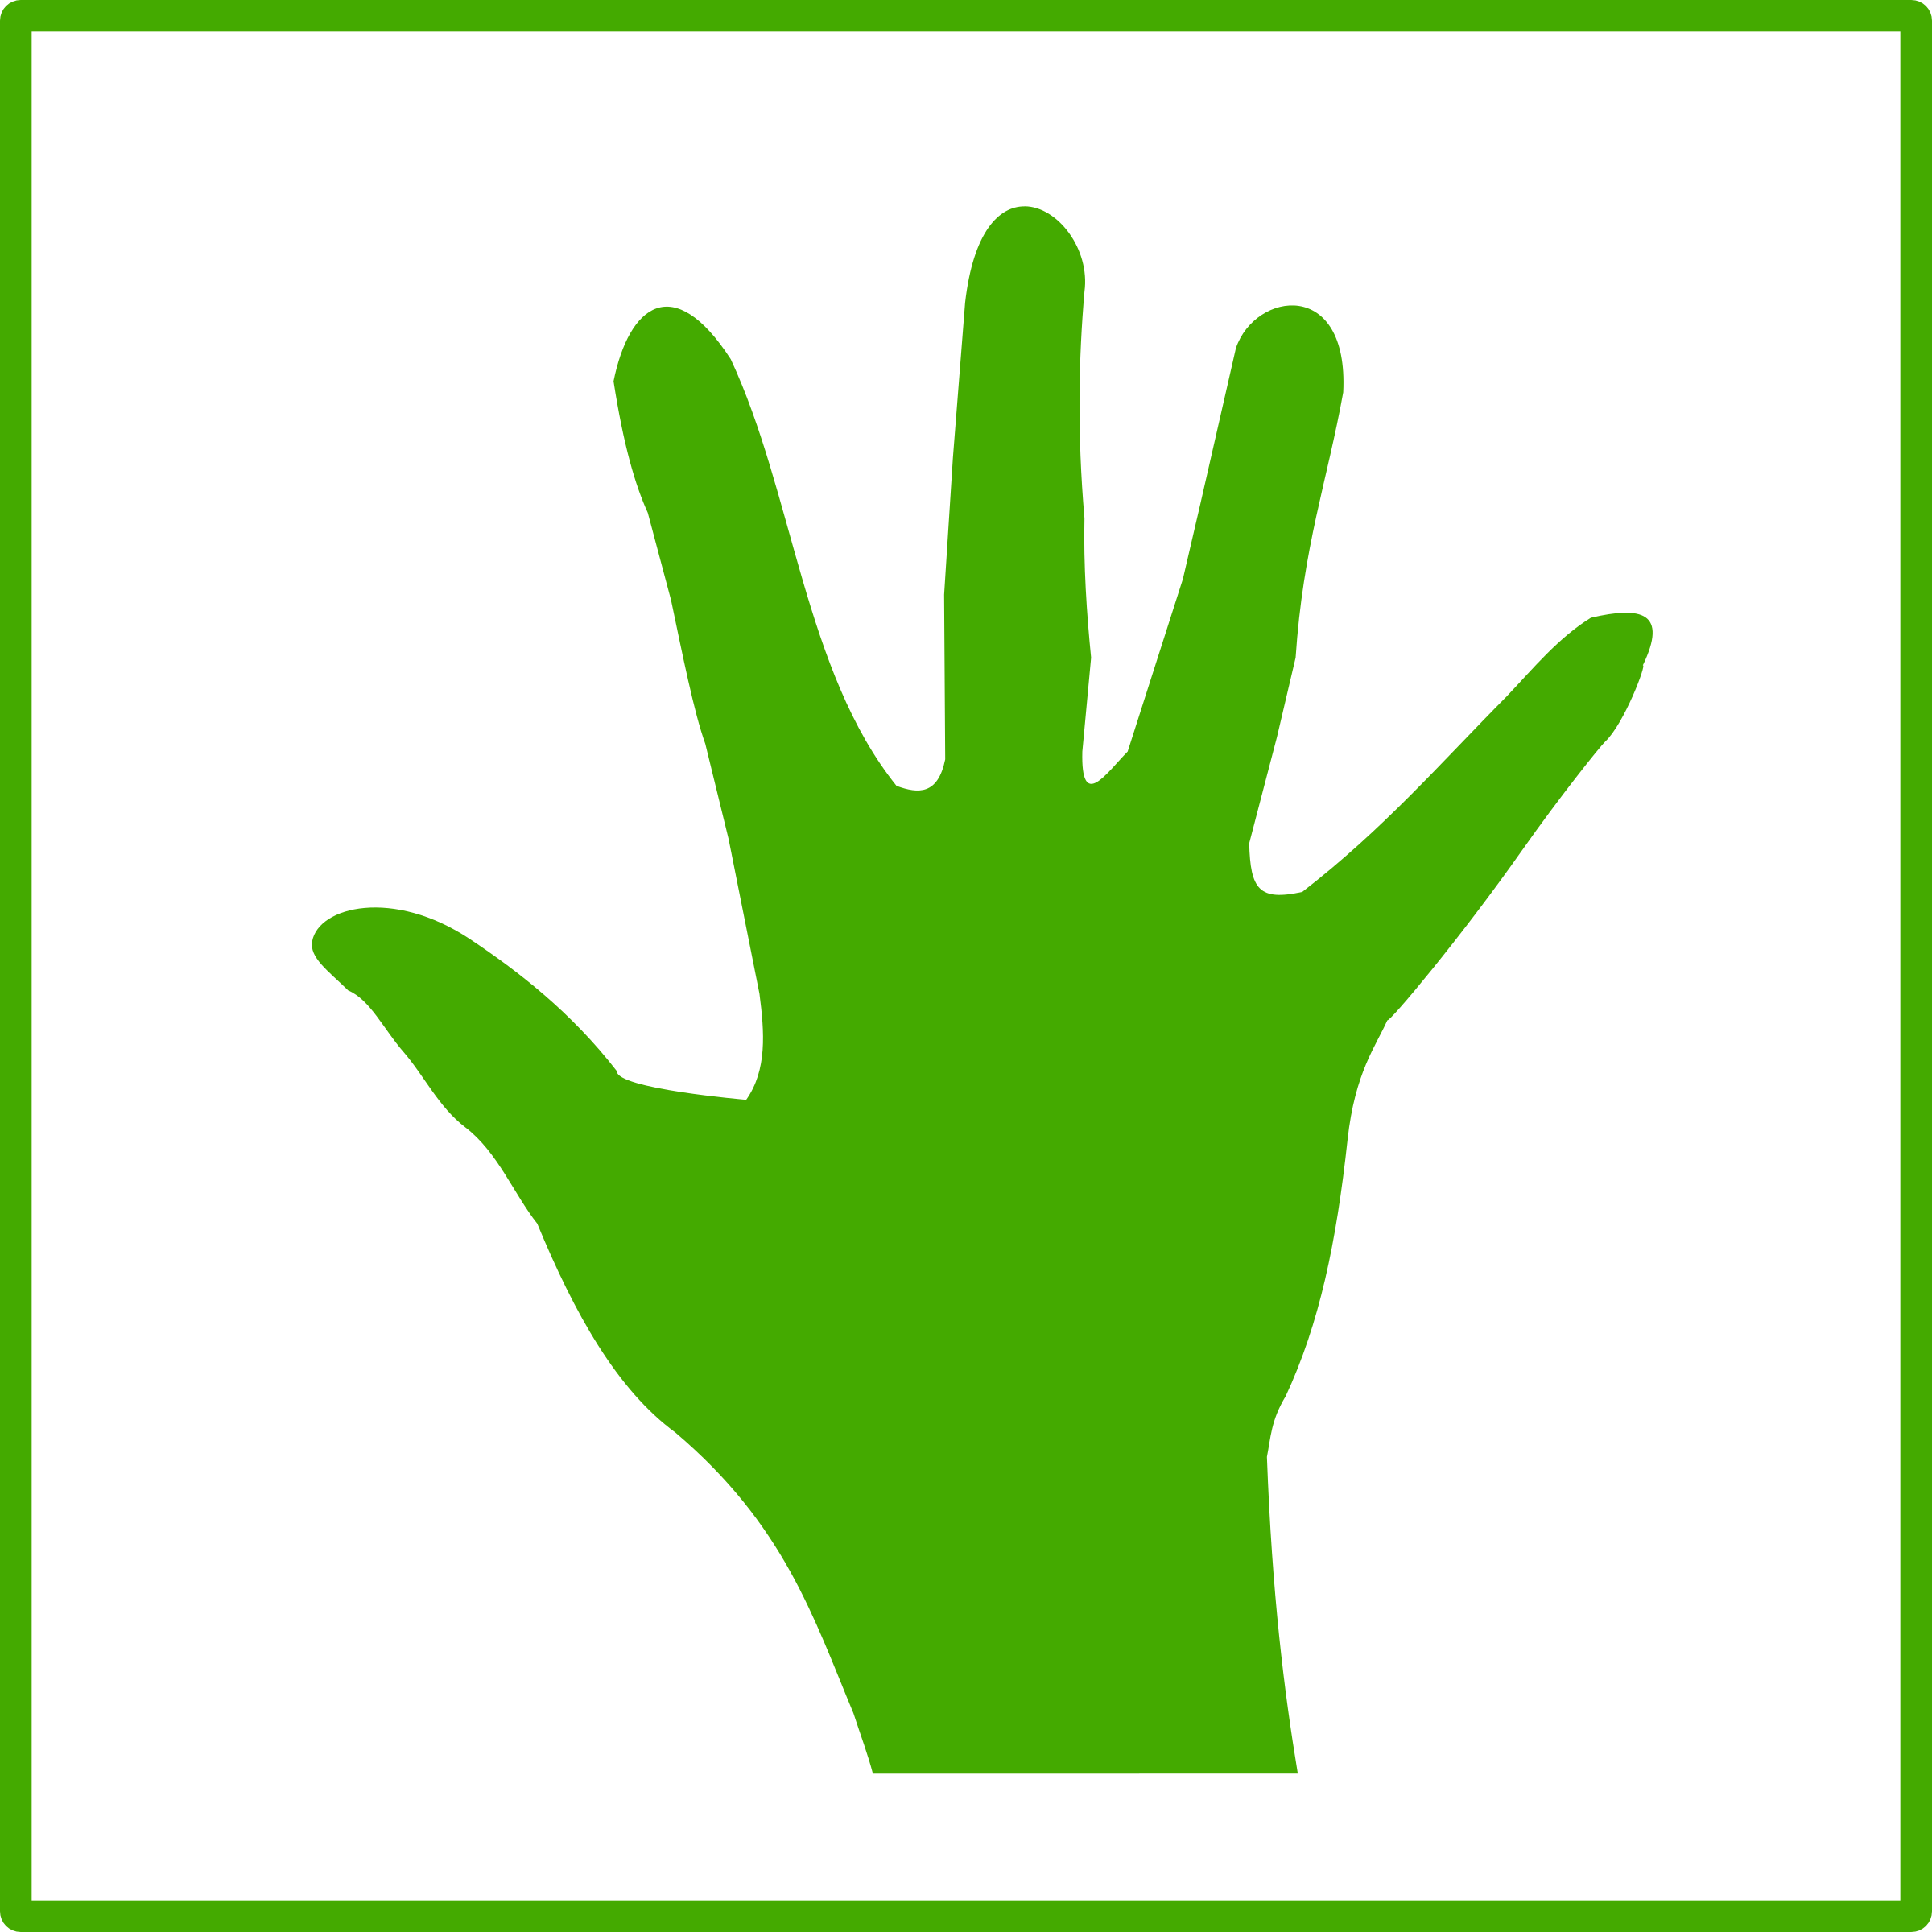 Hands clipart monster.  collection of green